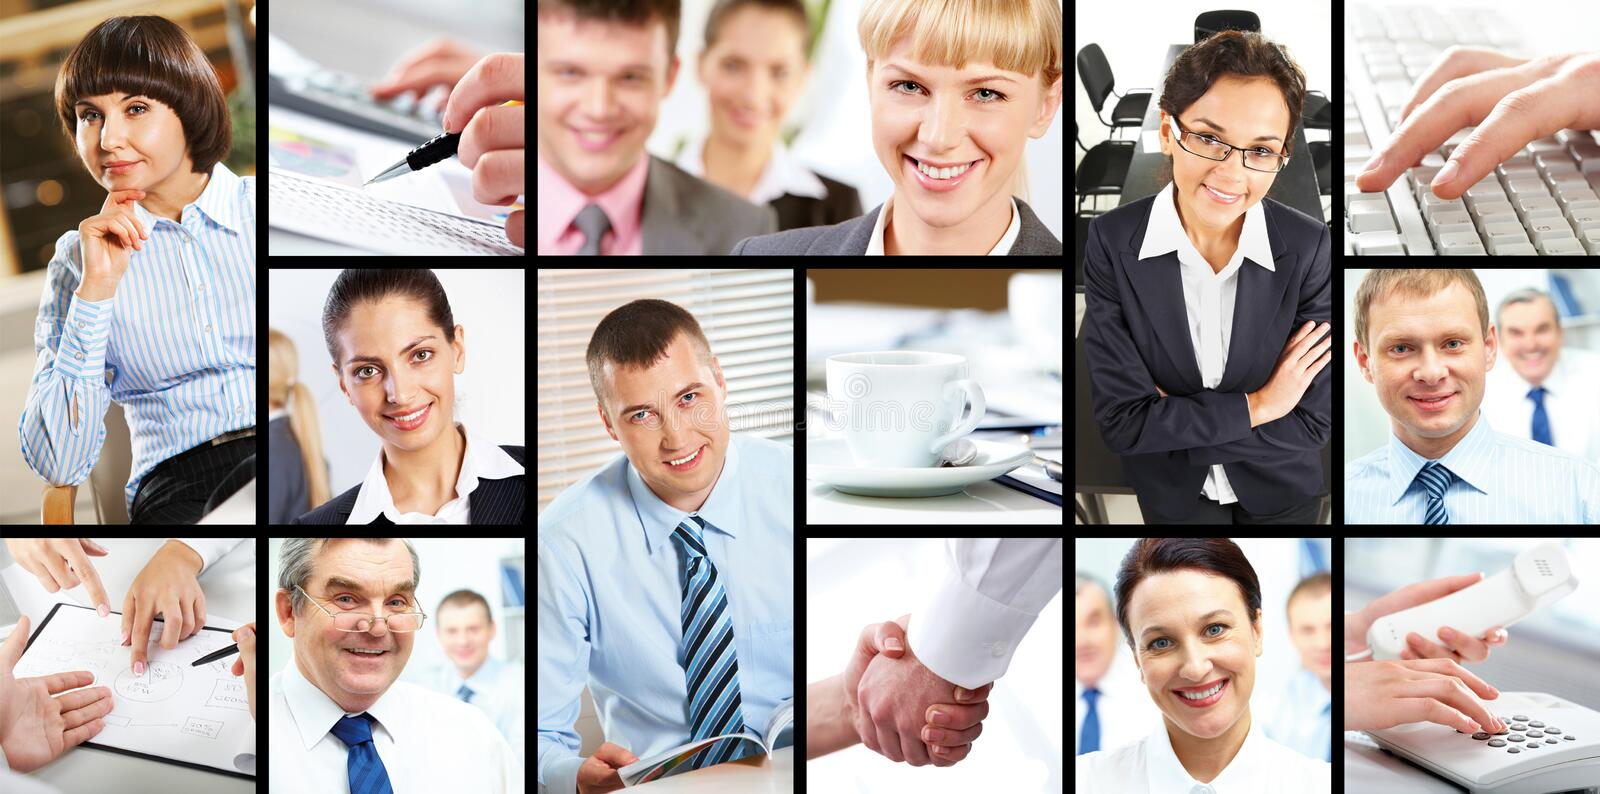 Download At work stock image. Image of business, handshake, office - 18592047